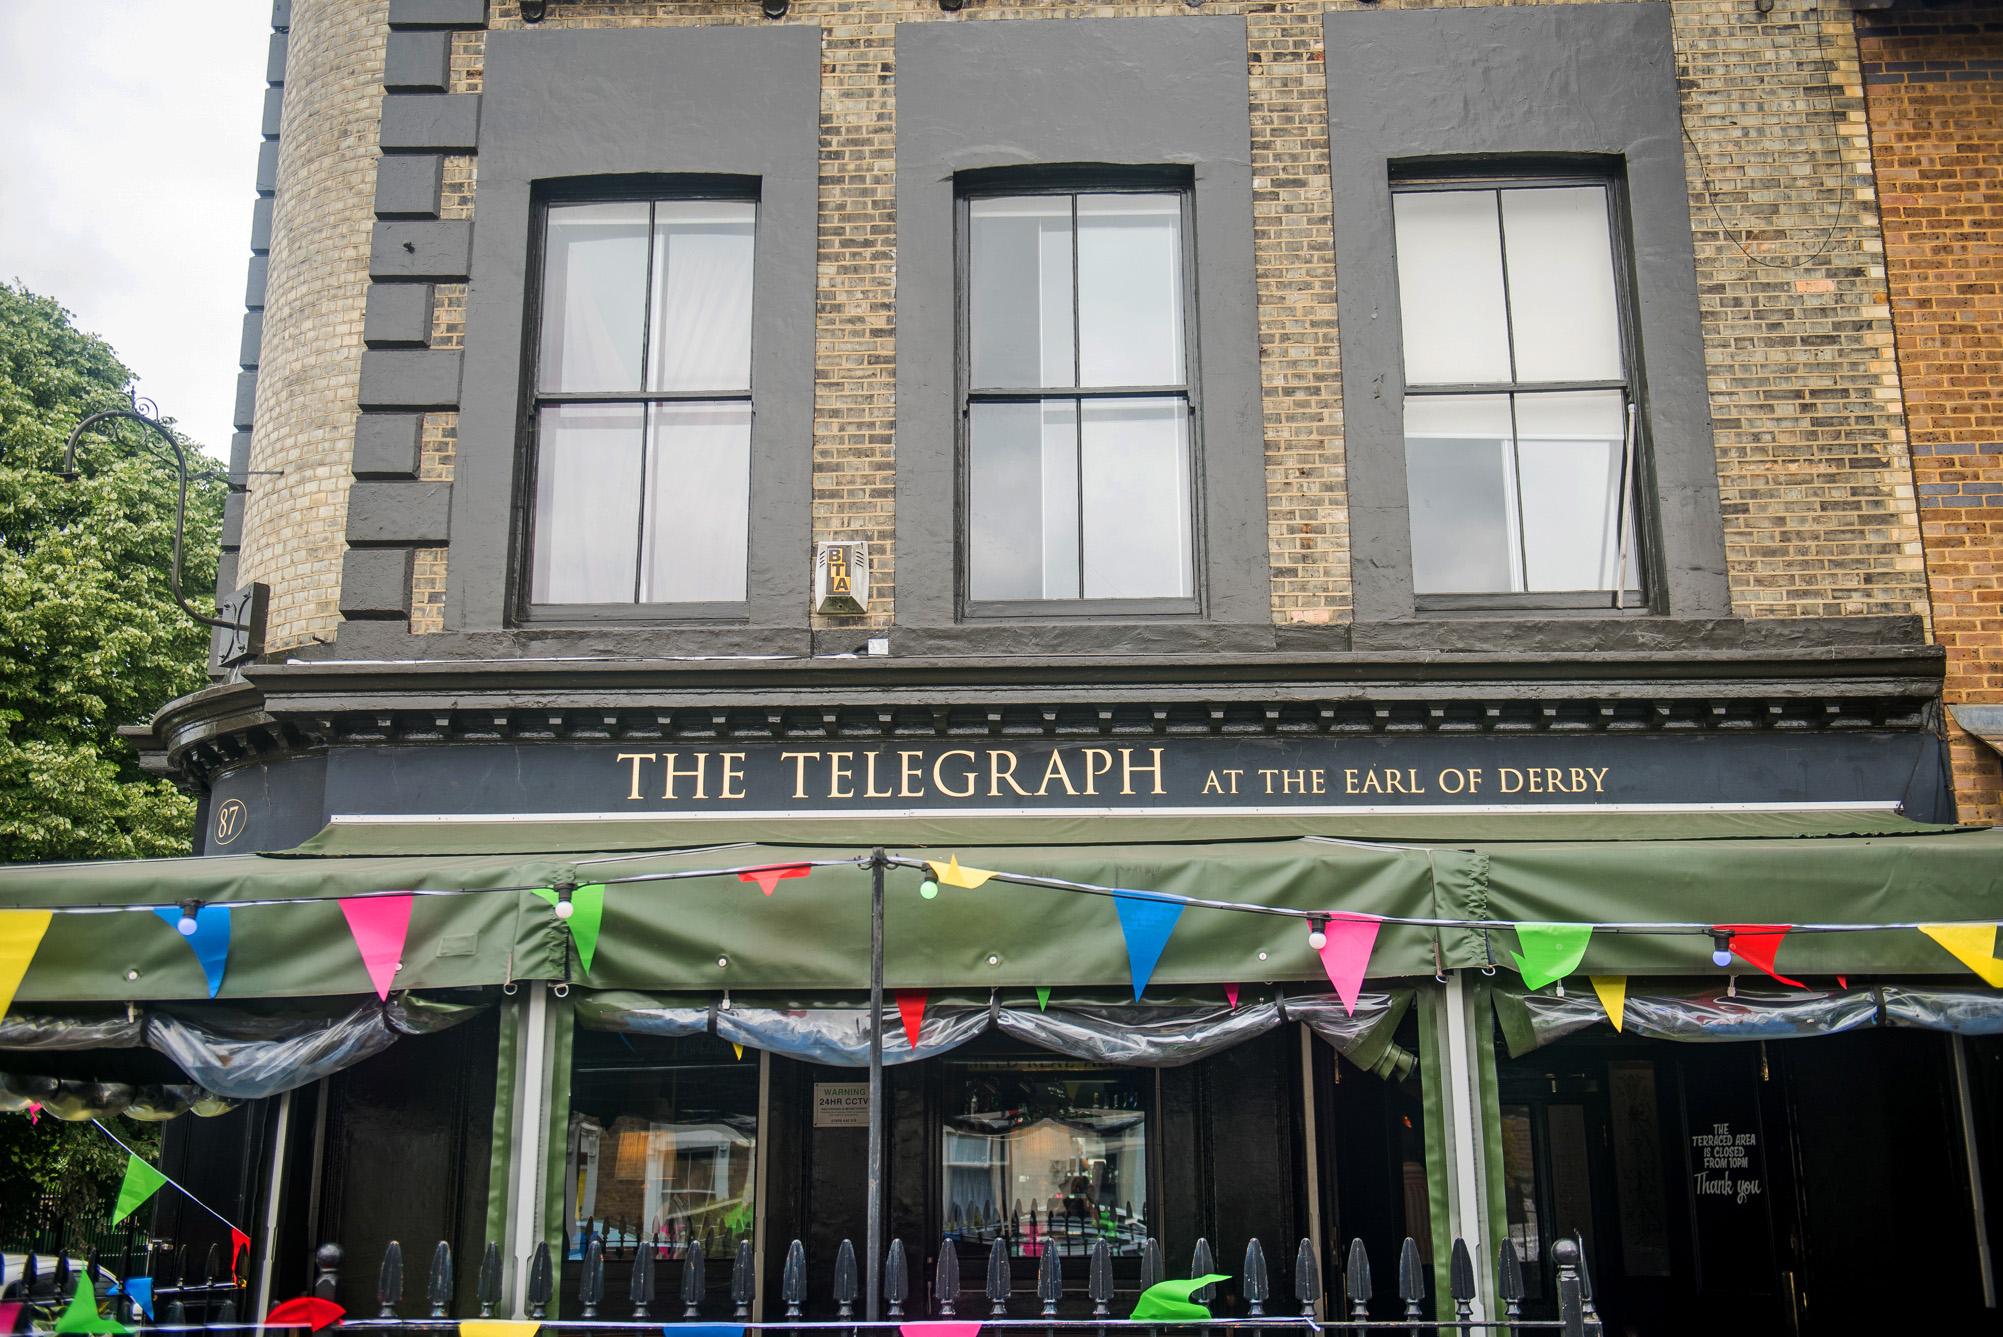 The Telegraph at the Earl of Derby